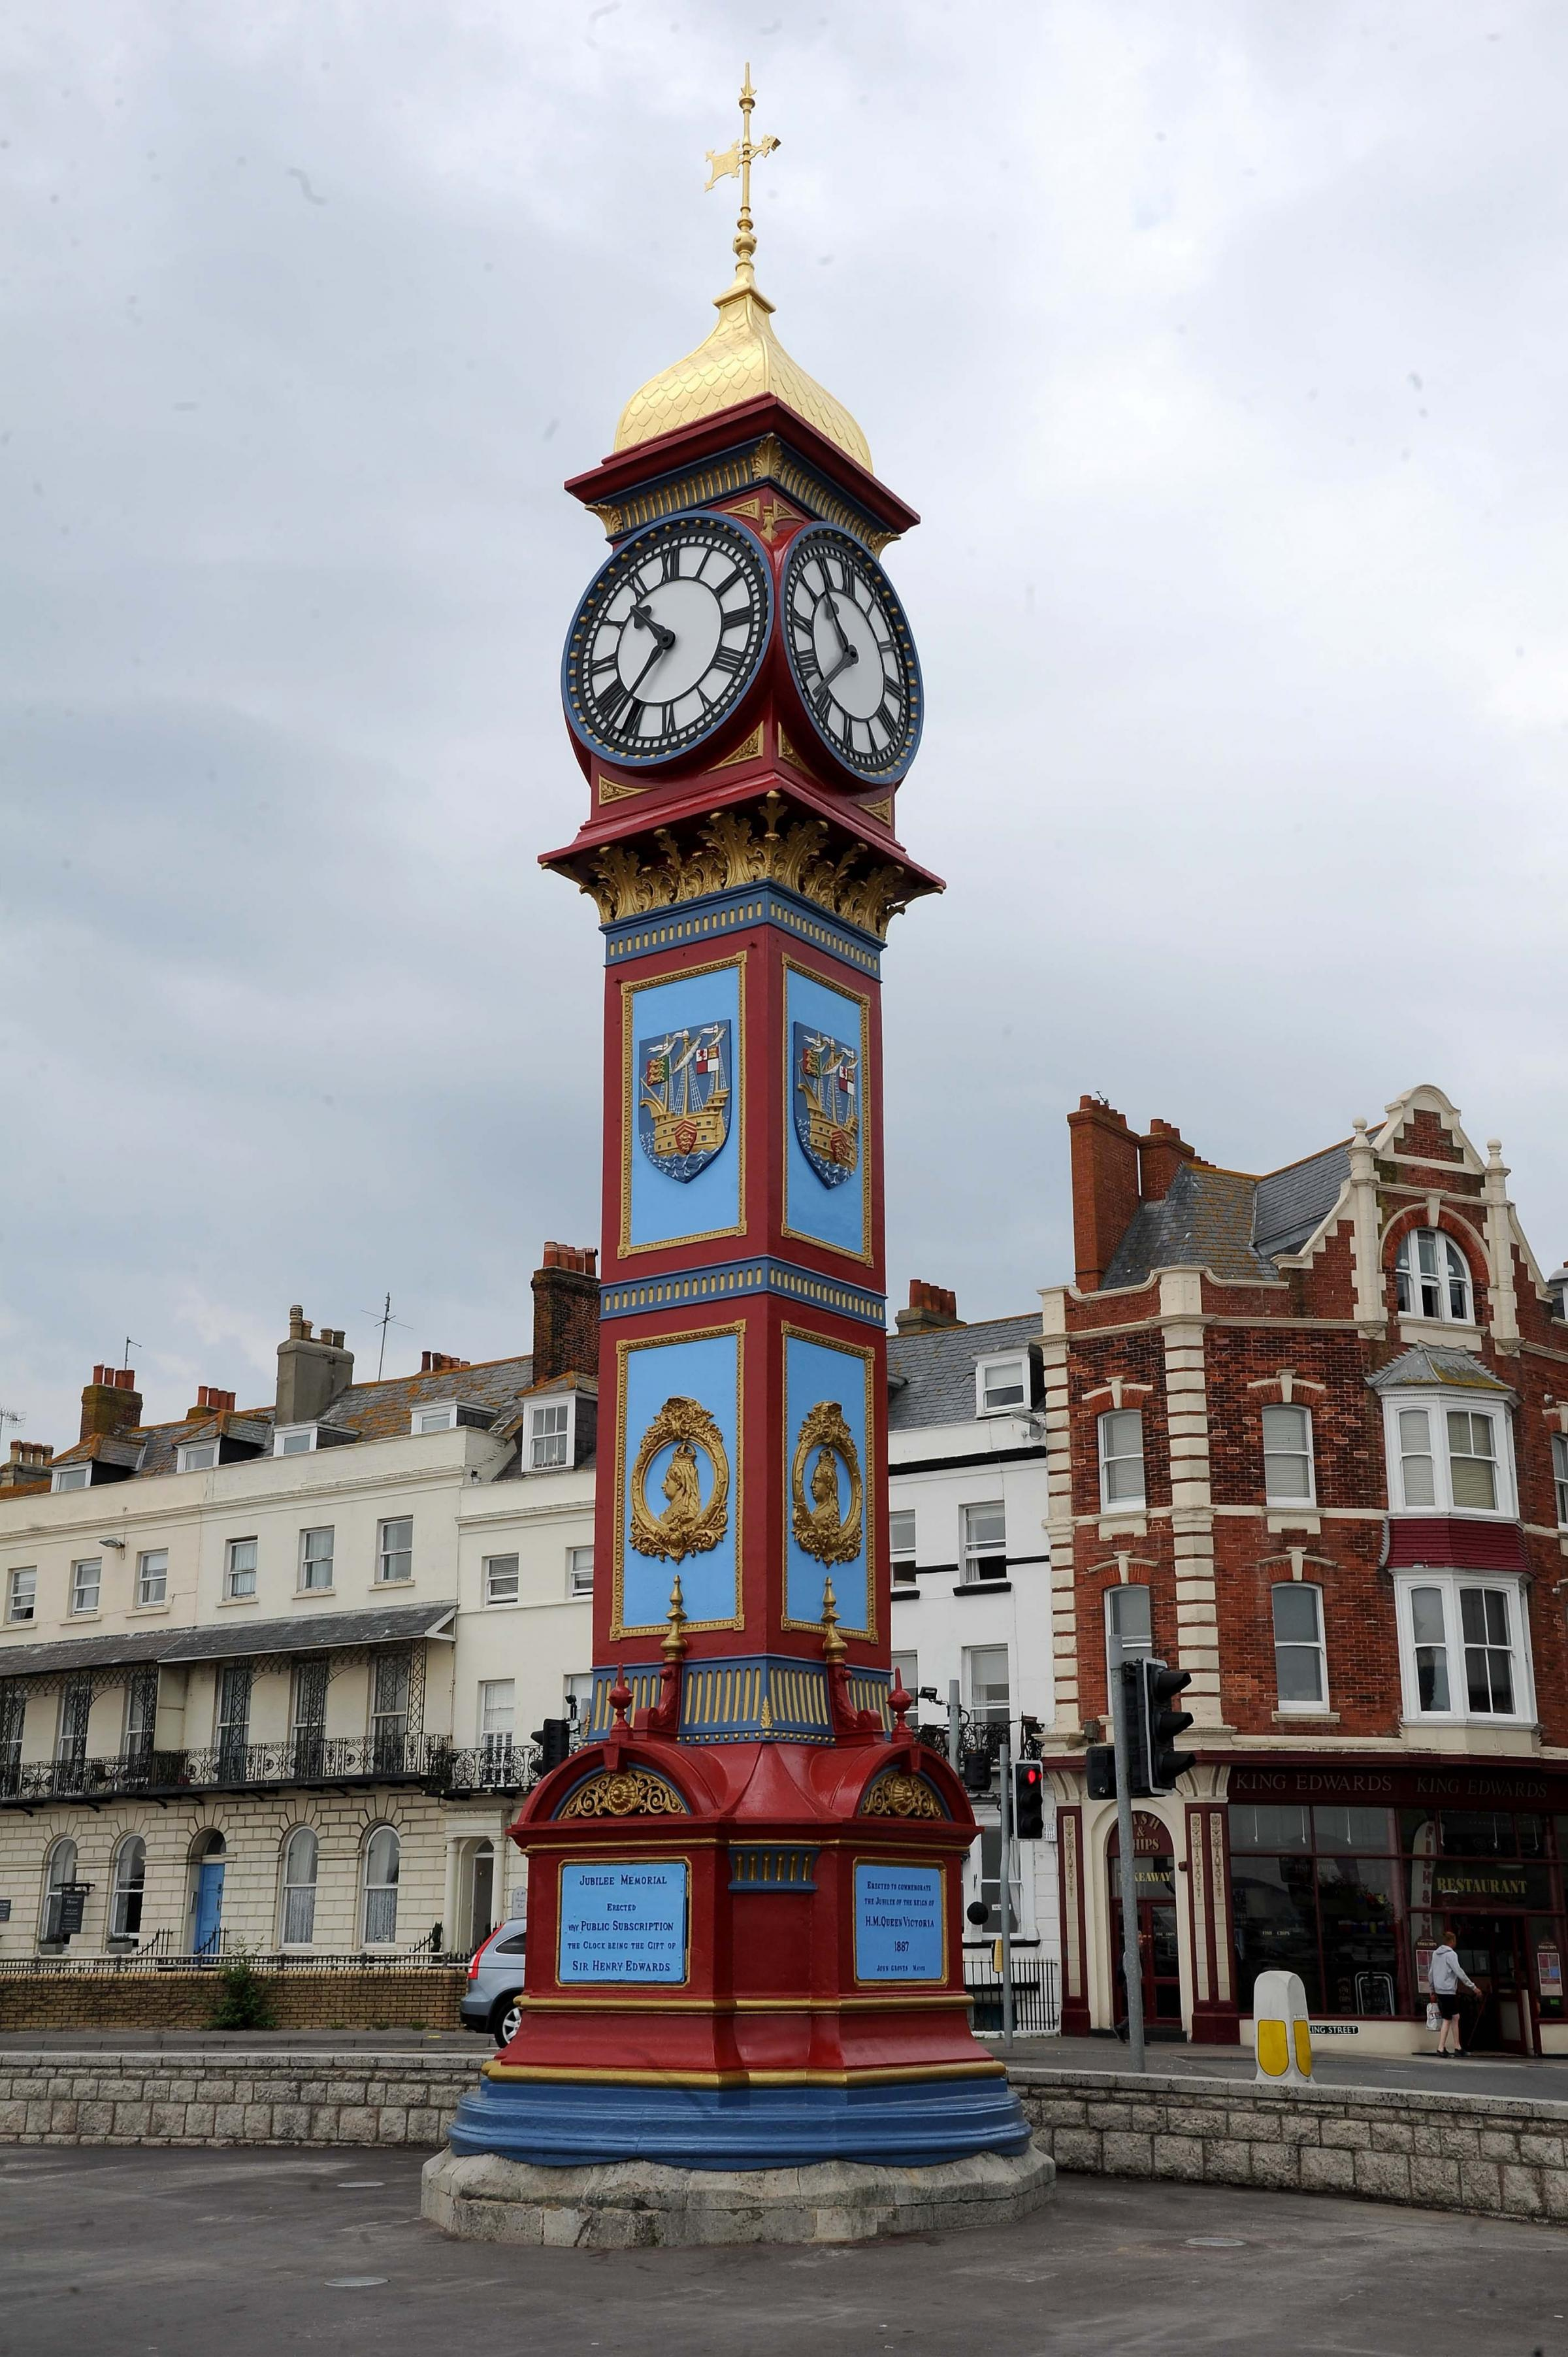 Jubilee Clock on Weymouth seafront, 12/06/18, PICTURE: FINNBARR WEBSTER/F19708